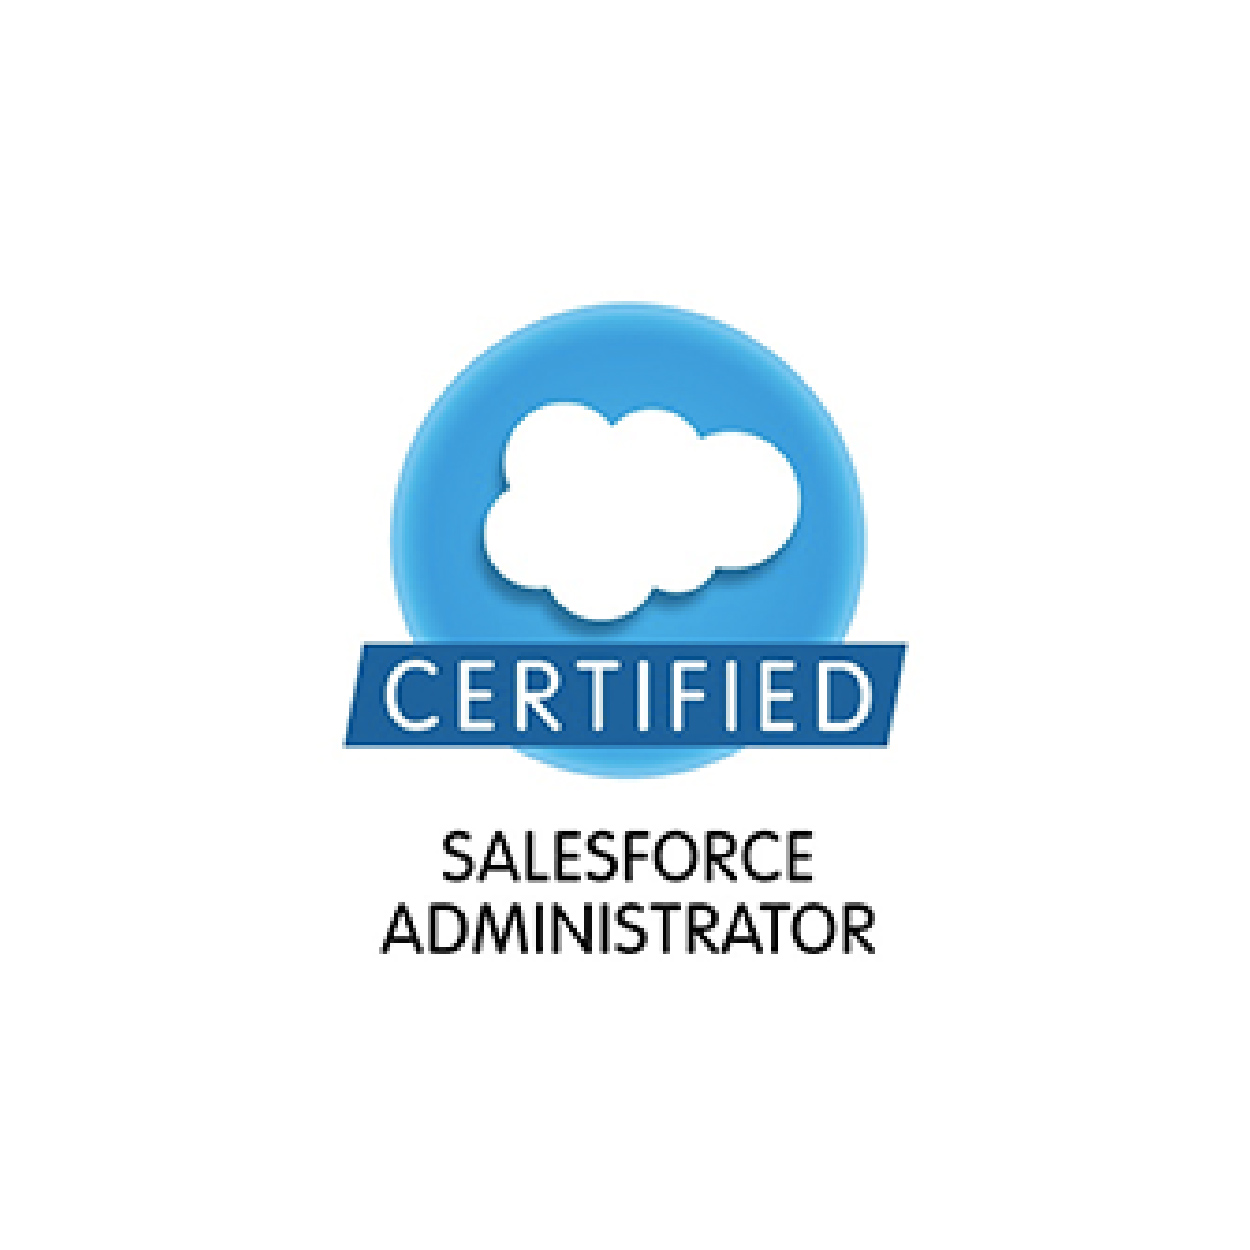 salesforce_certified-02.jpg